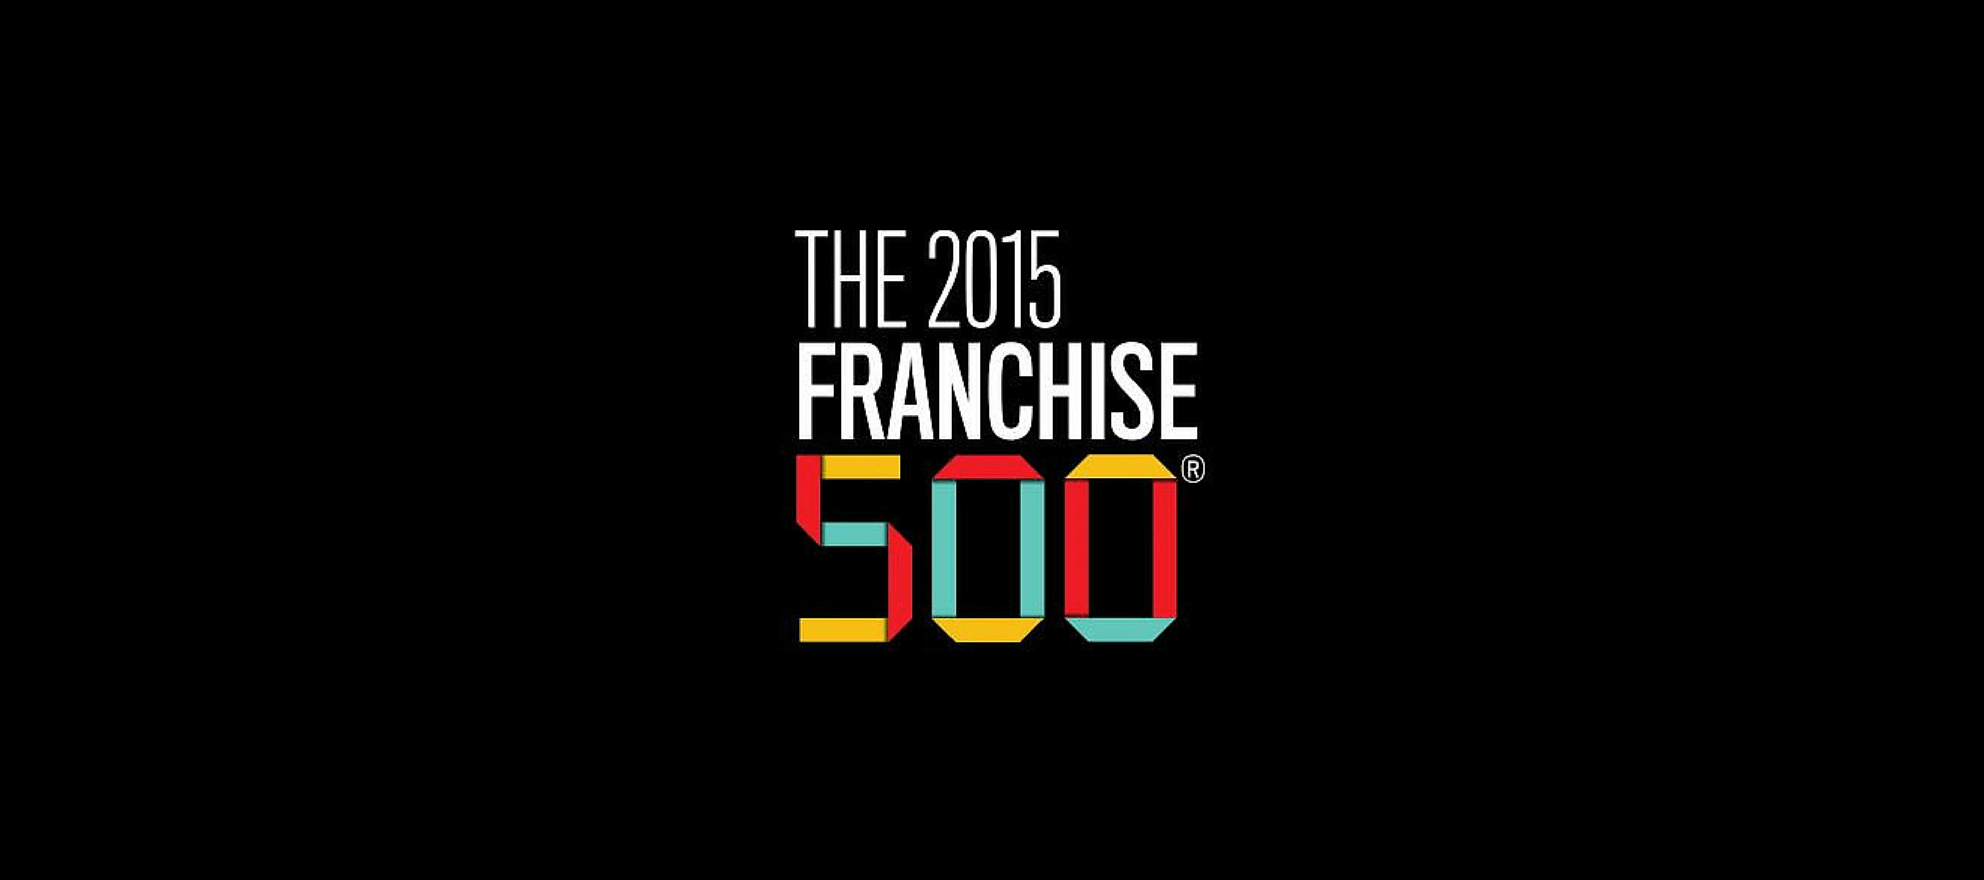 5 real estate companies make Entrepreneur's 'Franchise 500' list